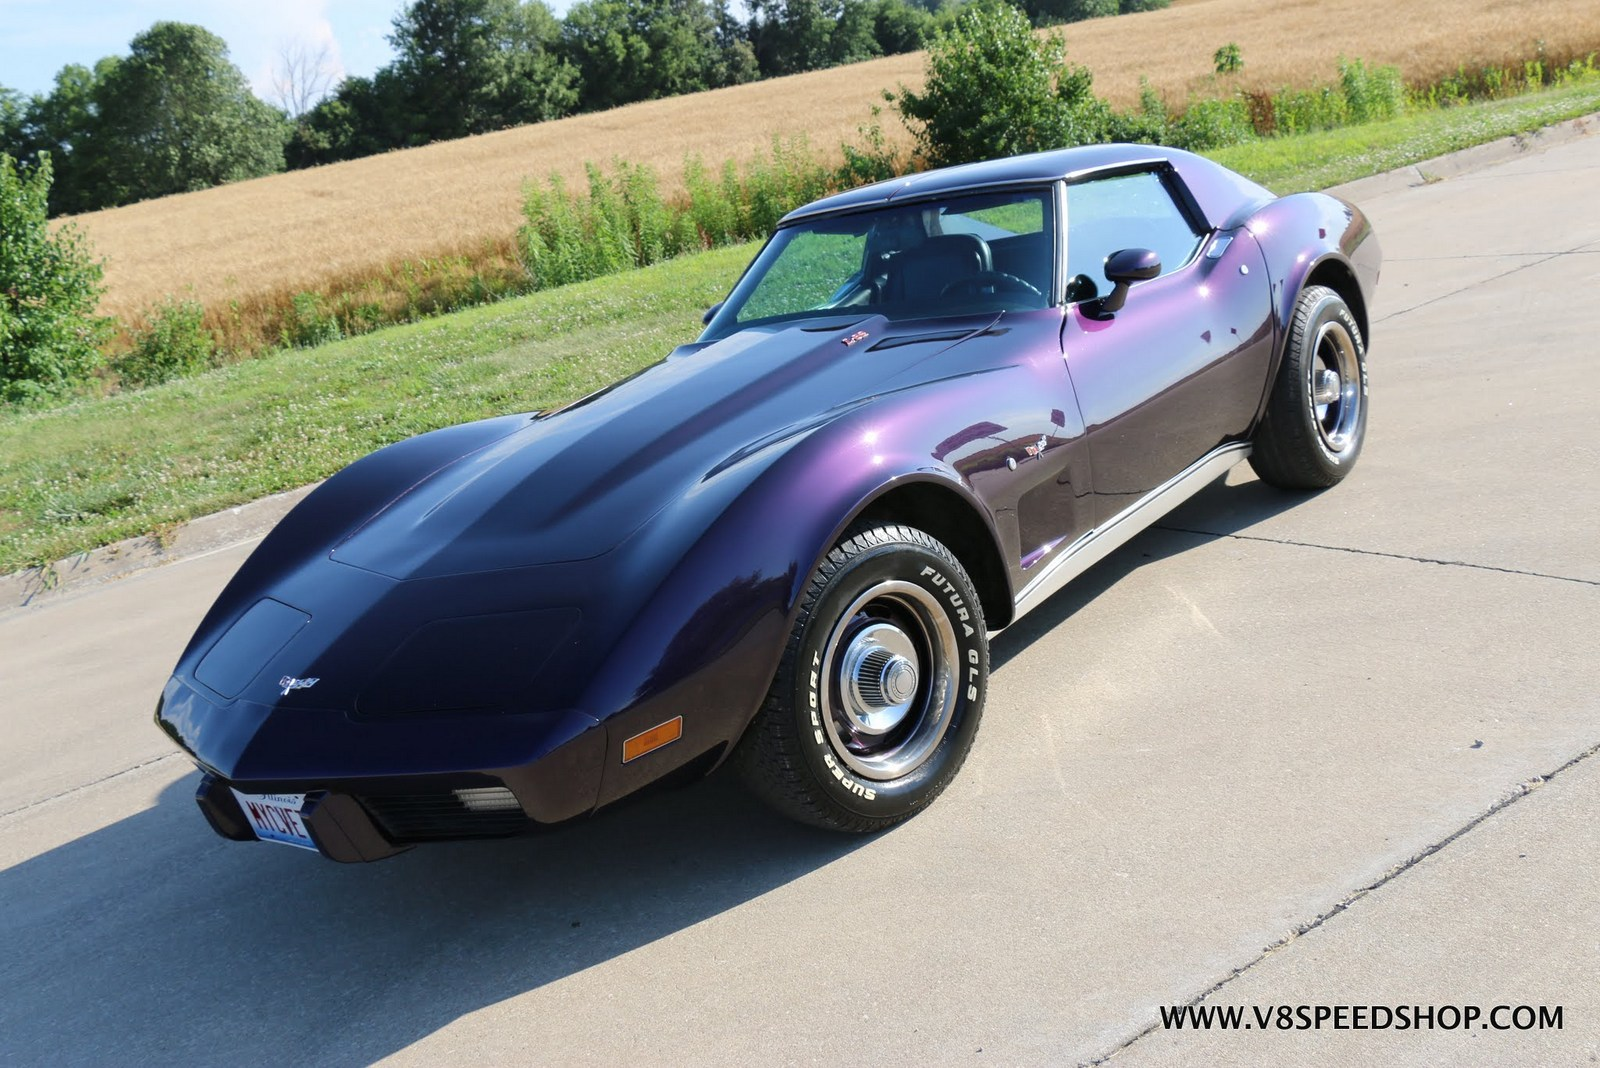 1977 Chevrolet Corvette Upgrades and Custom Console at V8 Speed & Resto Shop